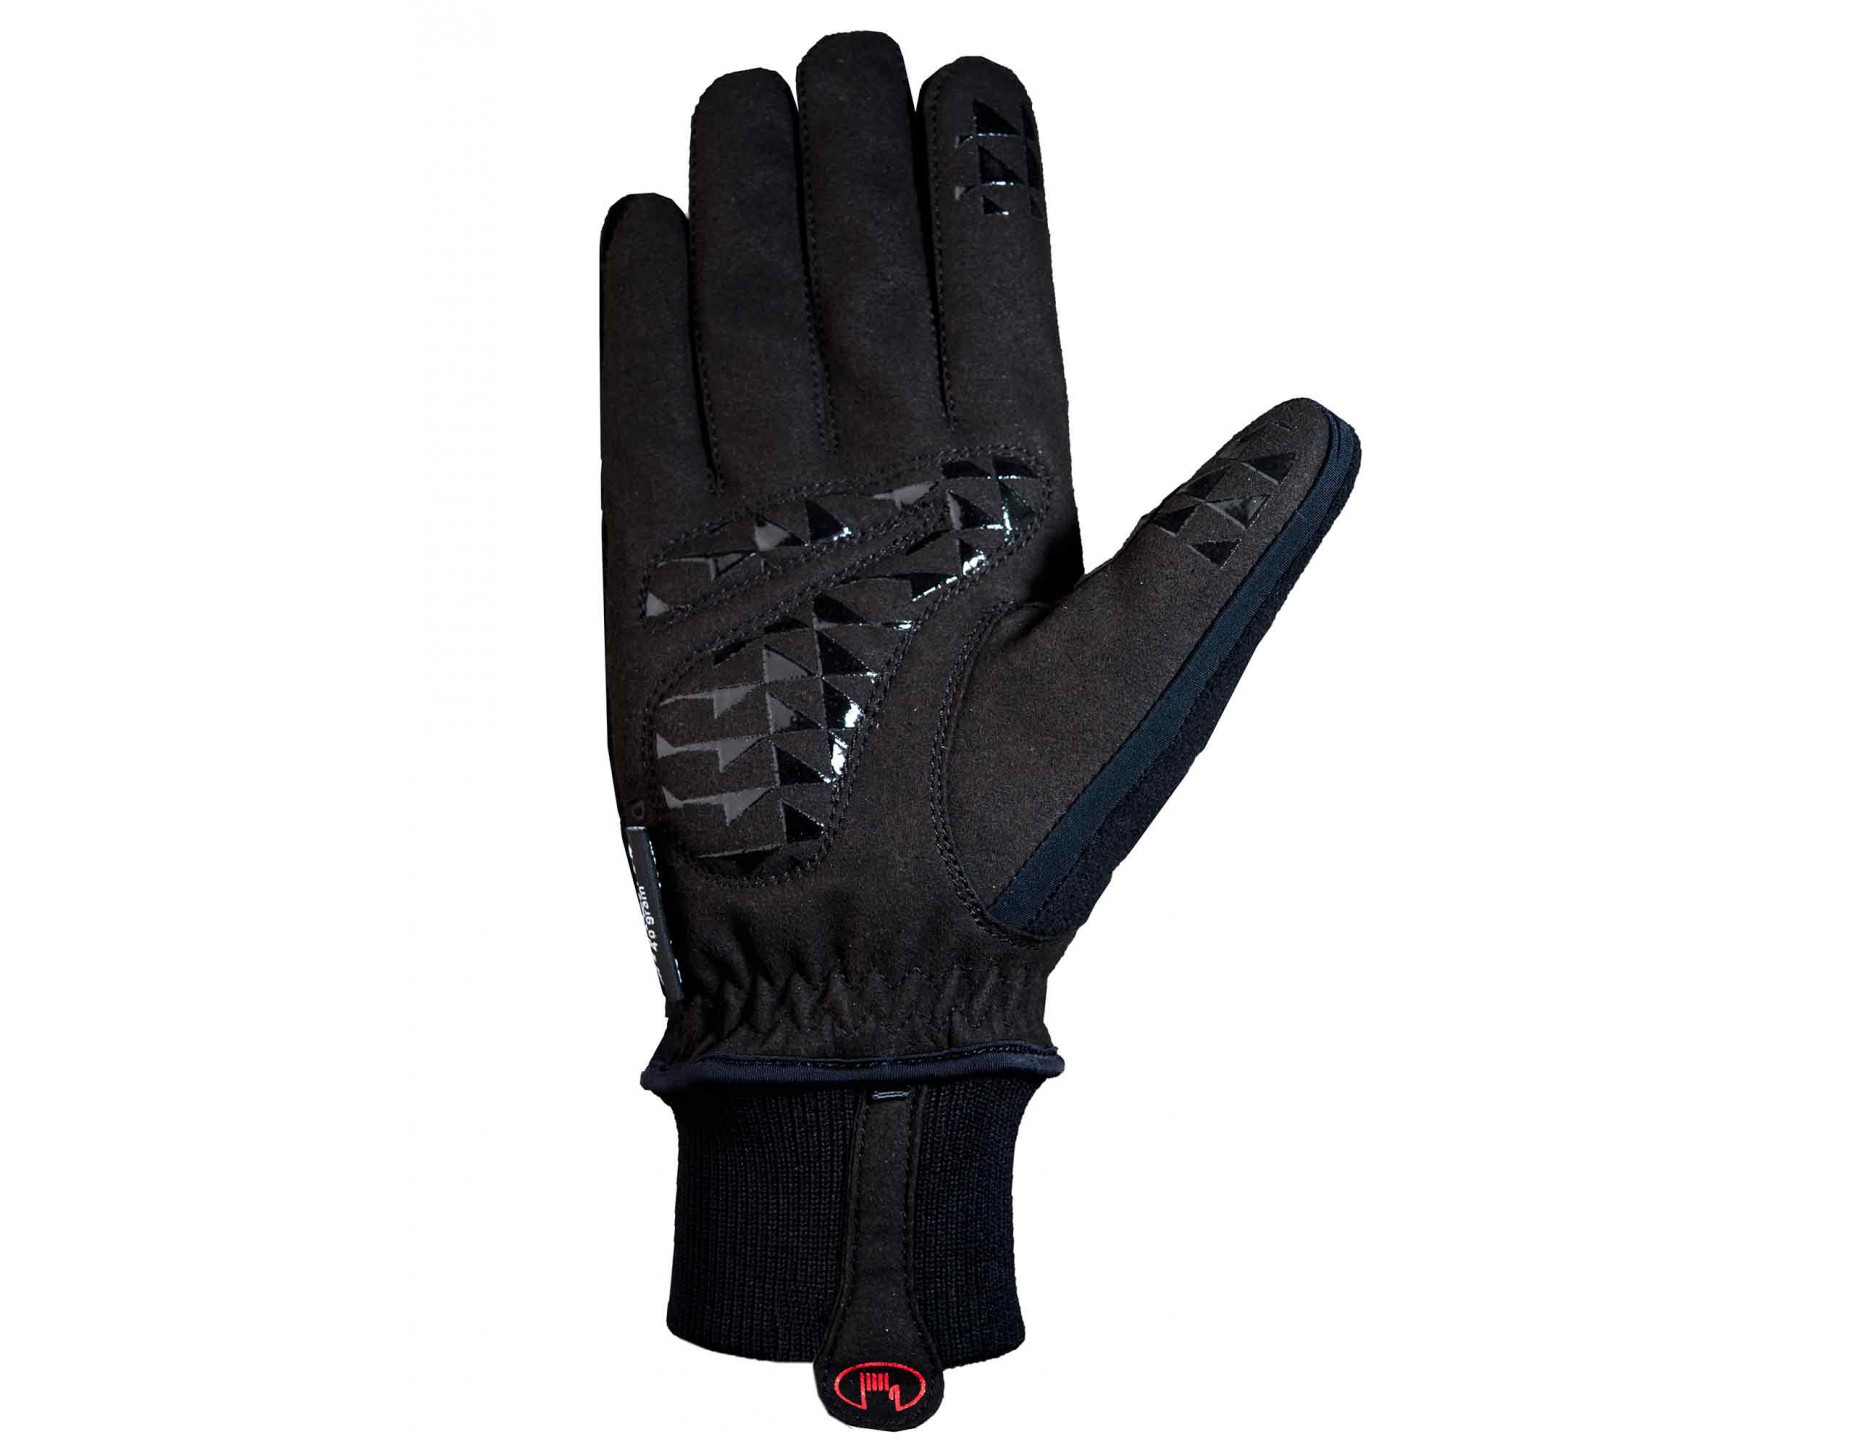 ROECKL PALMIRA JR. kids' winter gloves – everything you ...